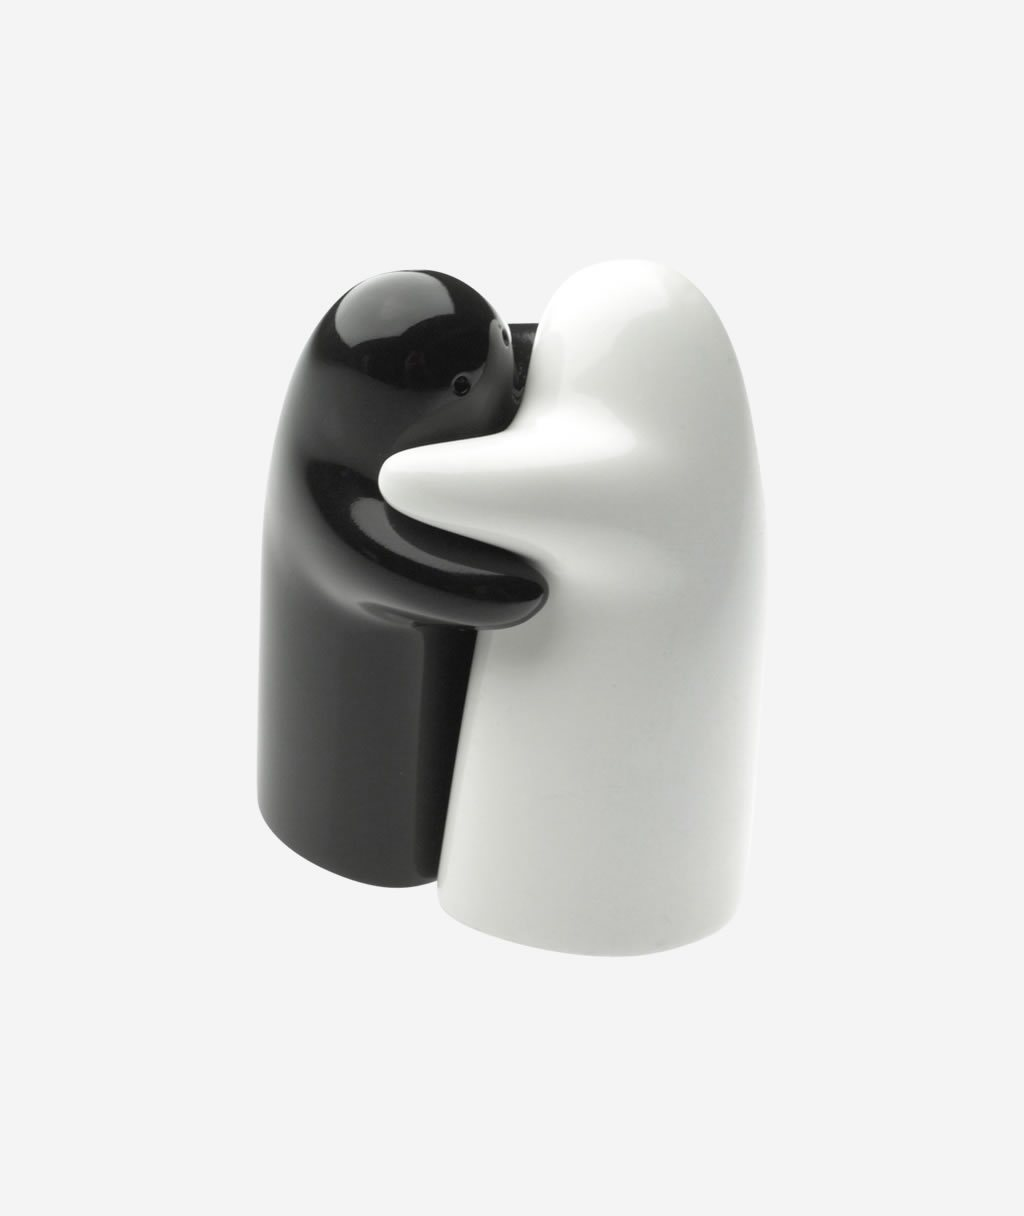 Hug, Ceramic Salt & Pepper Shakers